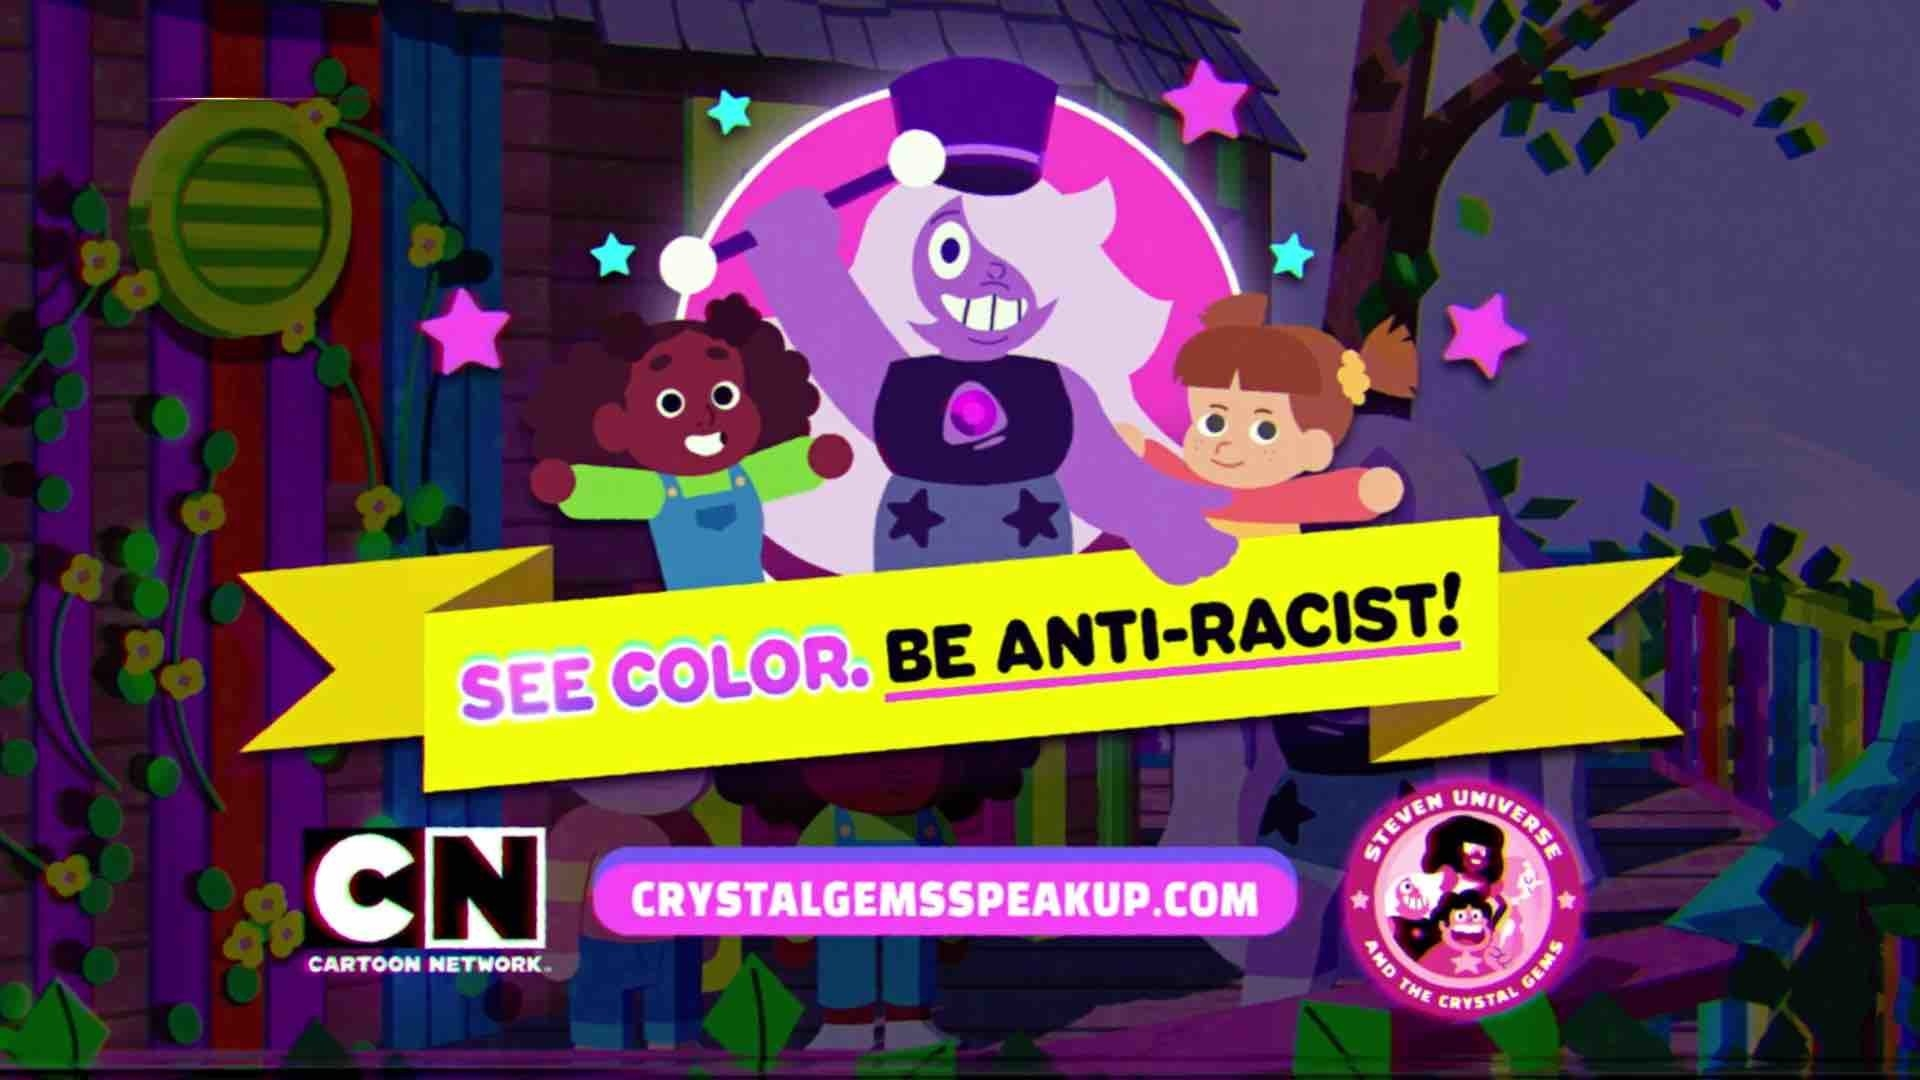 """logo that says """"see color. be anti-racist!"""""""